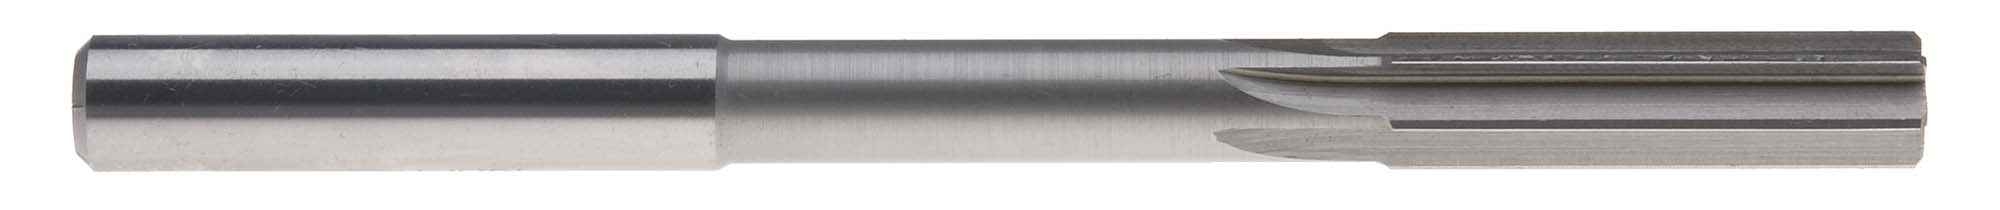 16mm Metric Chucking Reamer, High Speed Steel